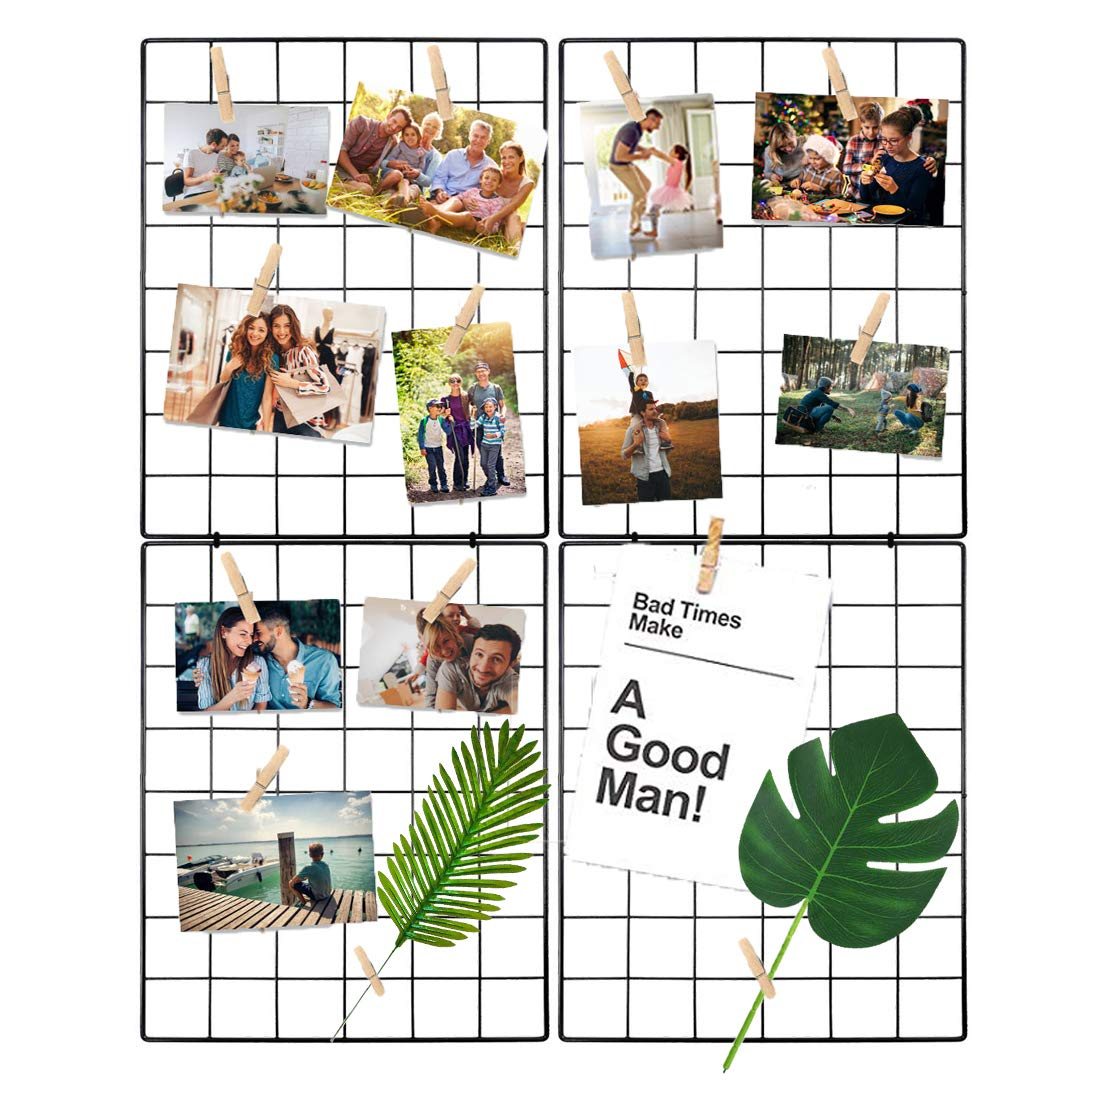 Halvalo Wall Grid Panel Wire Grid Board, Wall Photo Picture Display Frames Wall Grid Display Decor Mesh Memo Board Organizer (2 Pack)